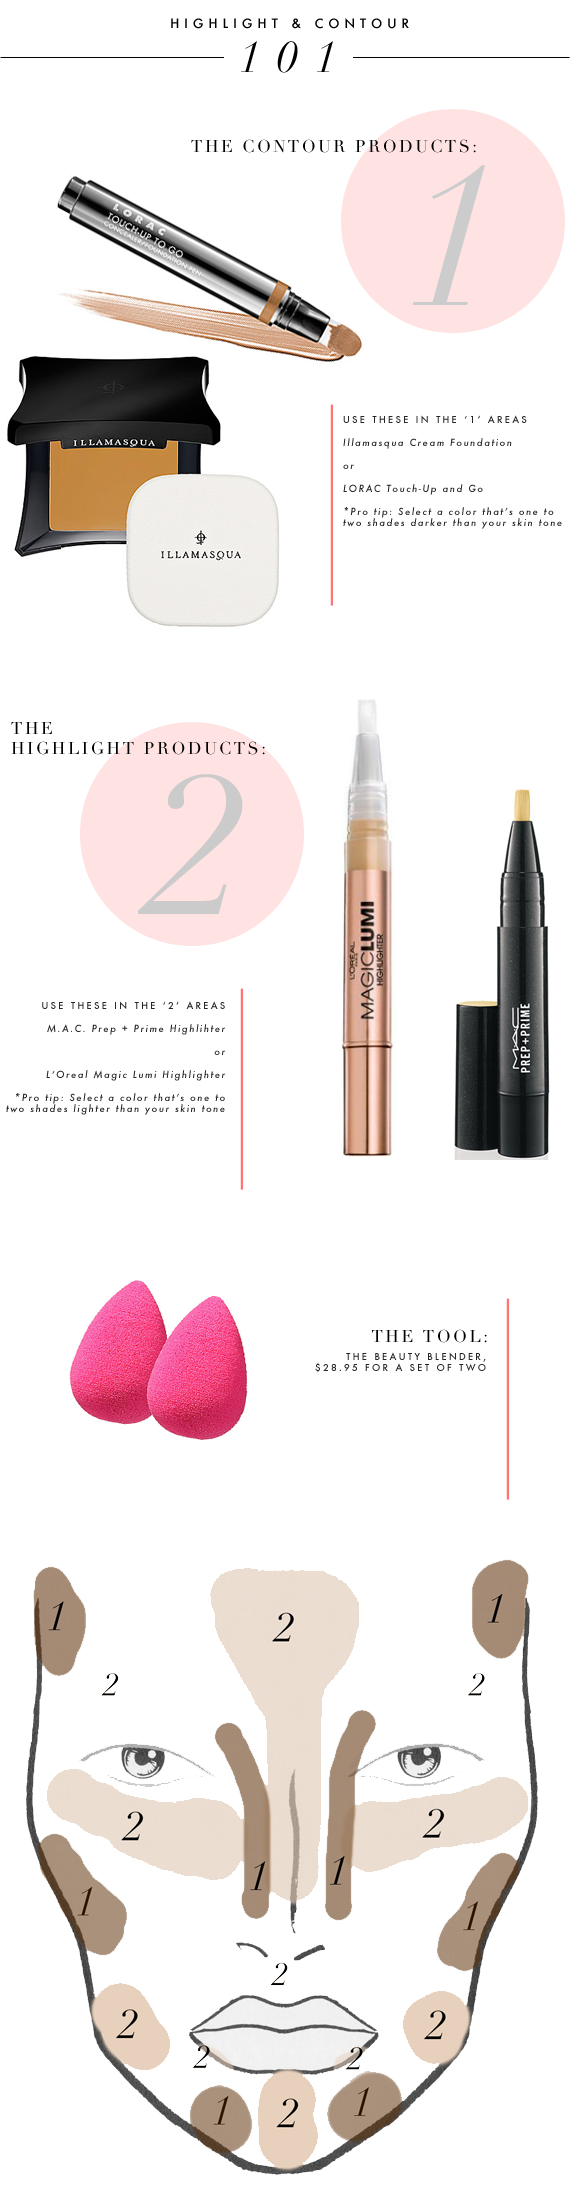 guide how to highlight and contour your face step by step guide